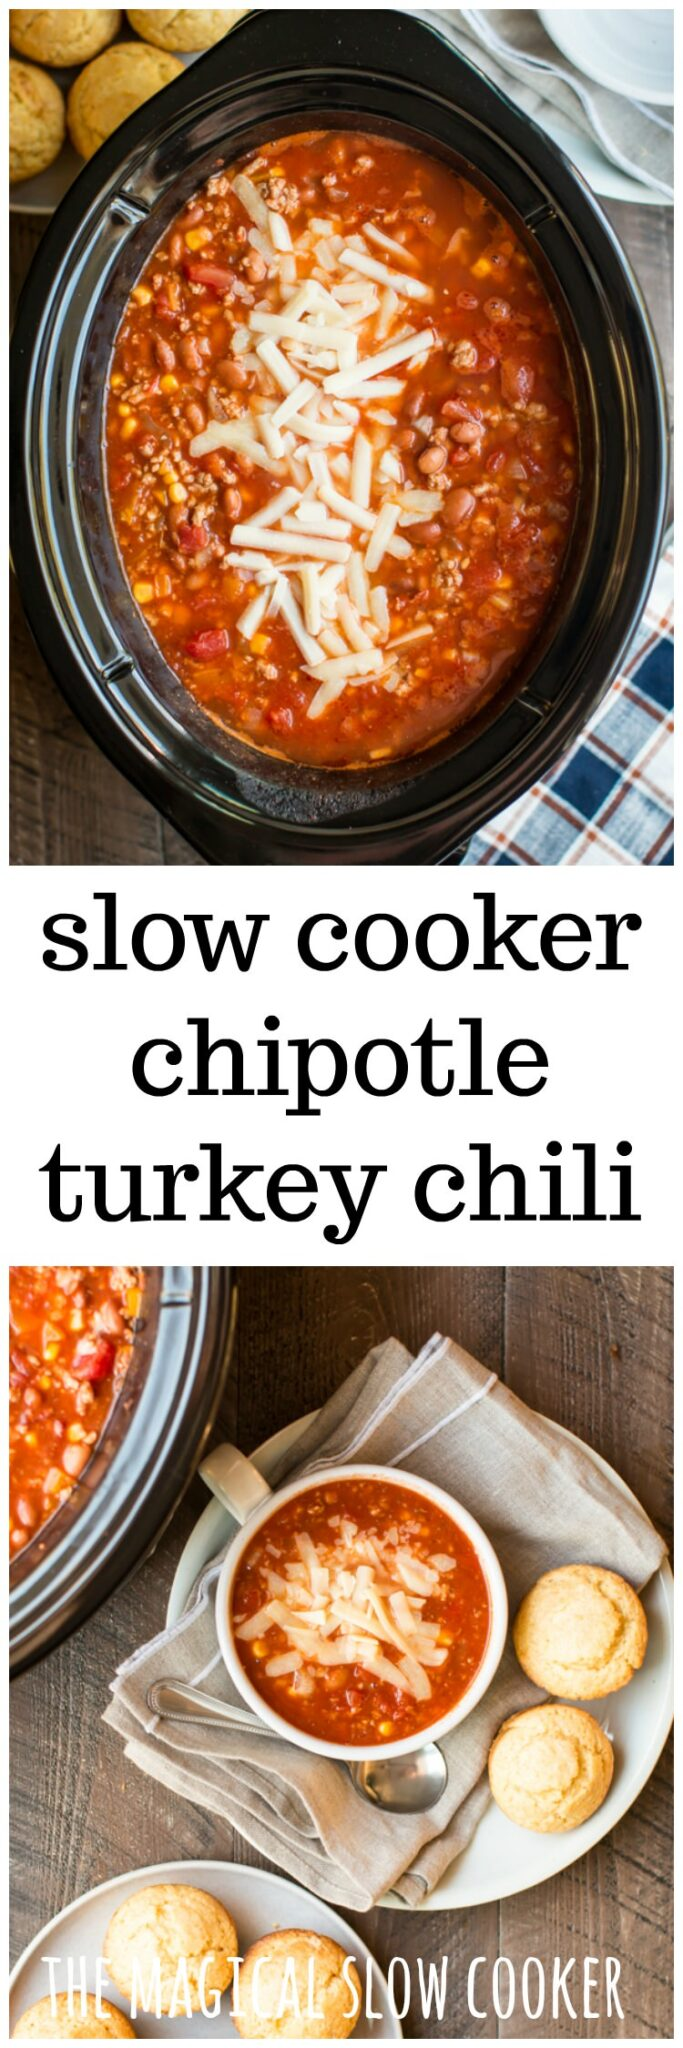 Slow Cooker Chipotle Turkey Chili